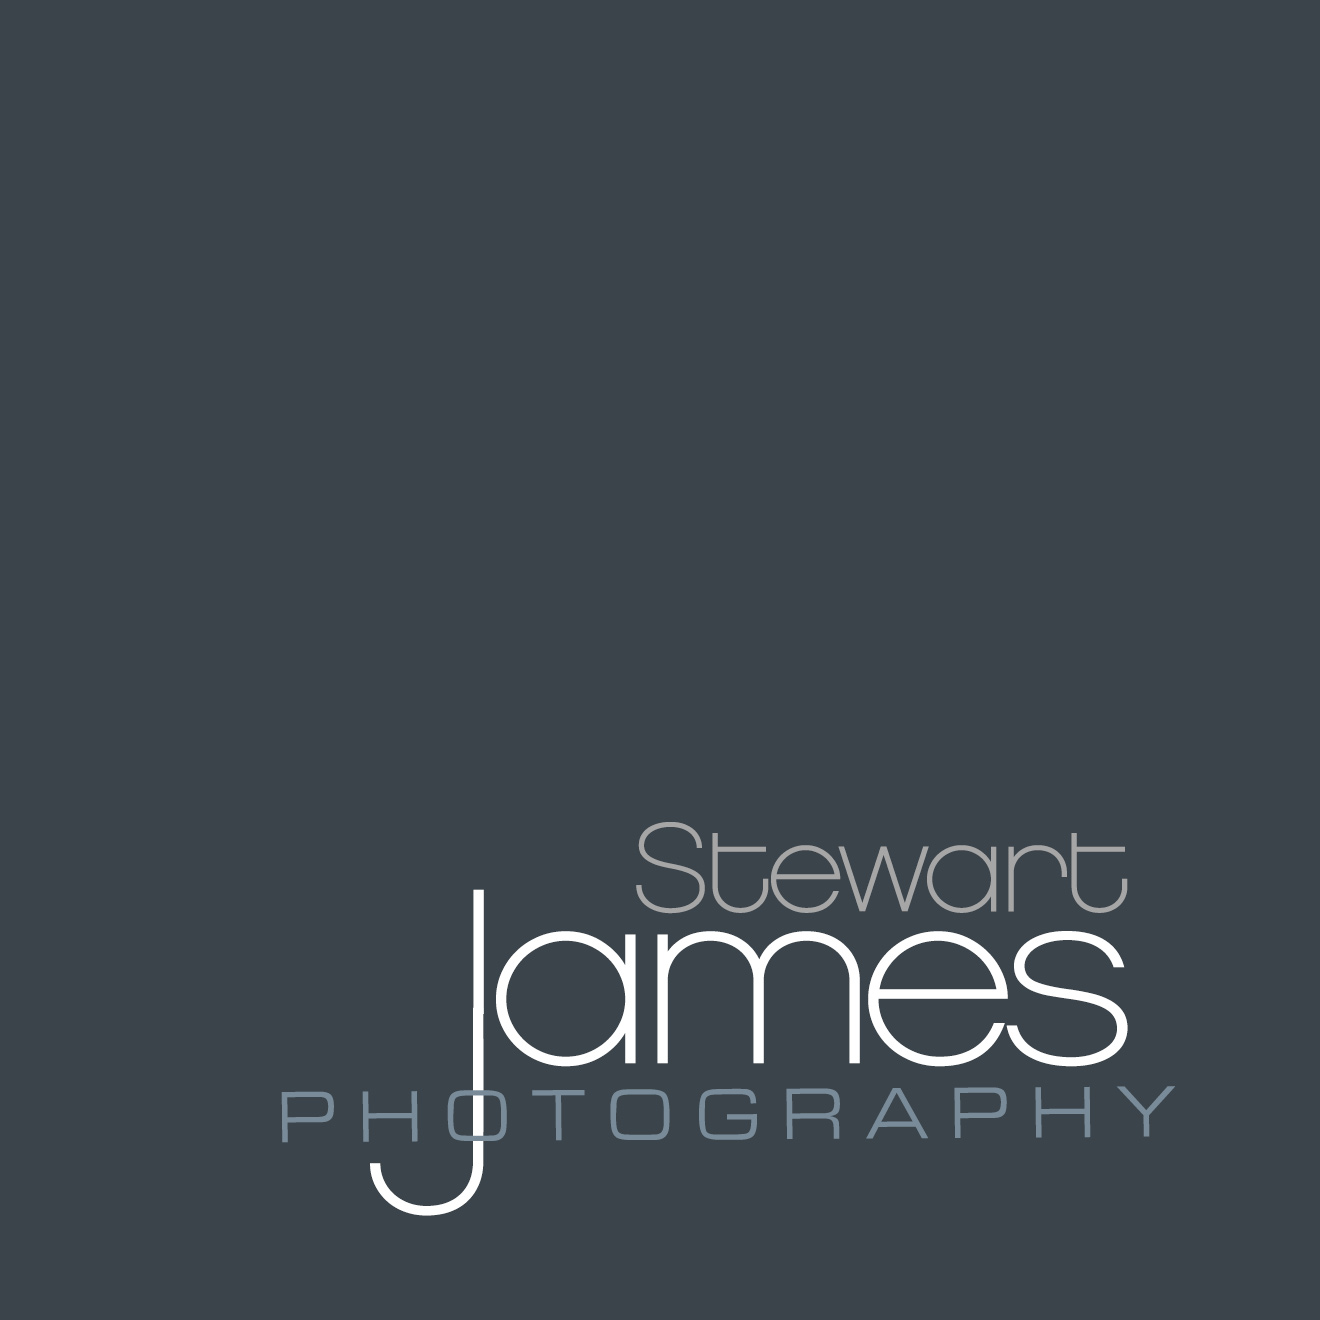 James Stewart Photography